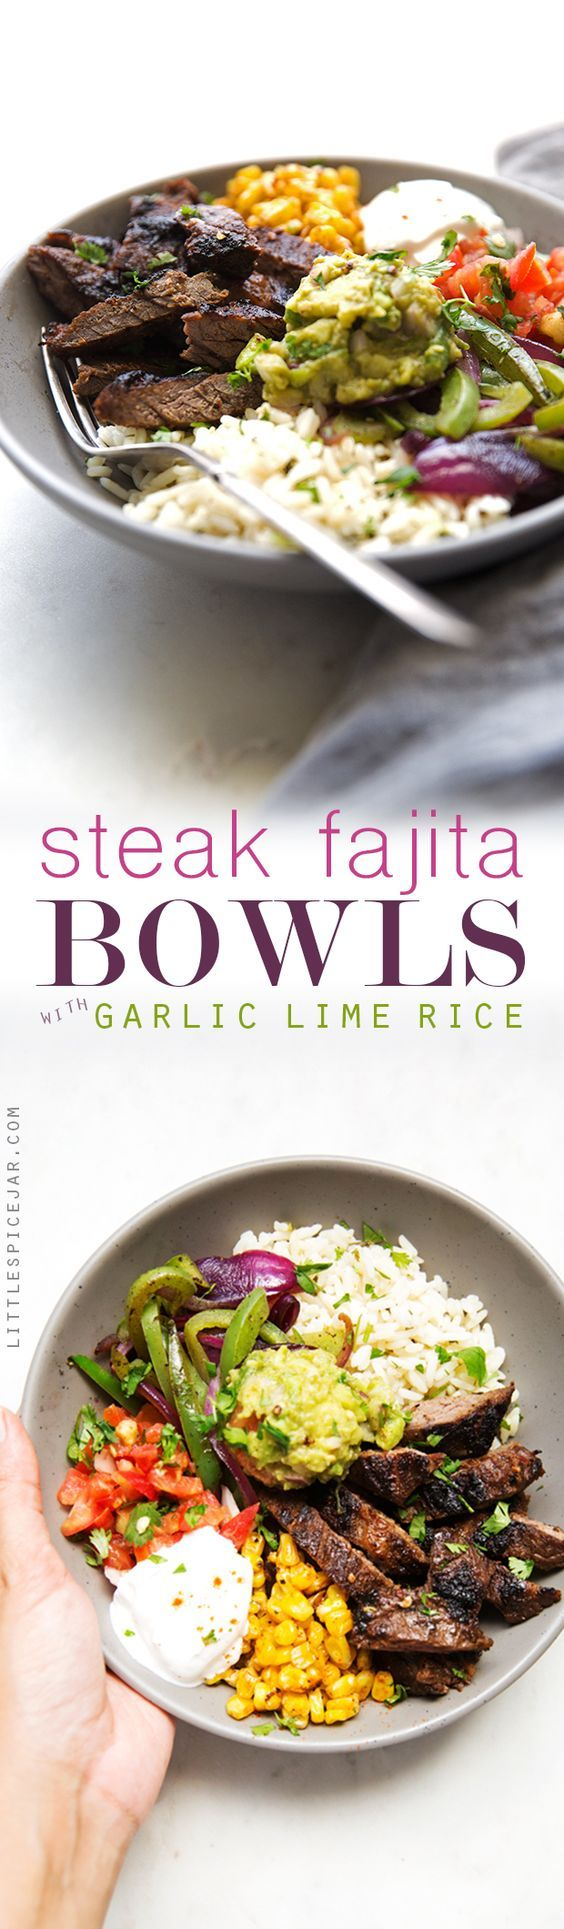 Steak Fajita Bowls with Garlic Lime Rice is part of Fajita bowls - Homemade steak fajita bowls with garlic lime rice  These fajita bowls taste even better than the ones at Chipotle! The secret is the homemade marinade for the steak… it is to DIE for!